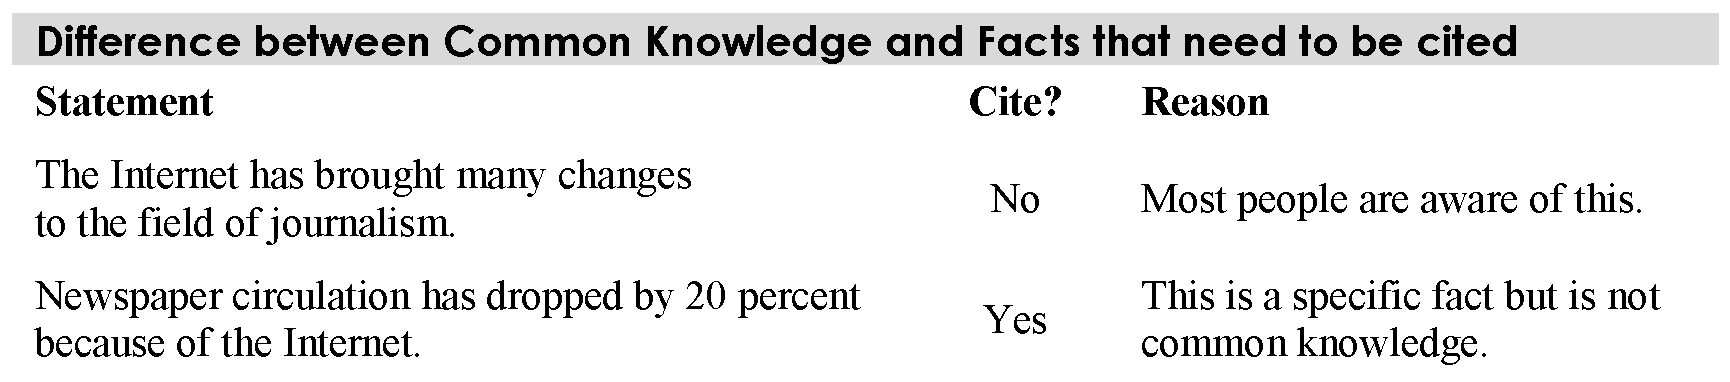 table answering when to cite statements and if they are common knowledge or not